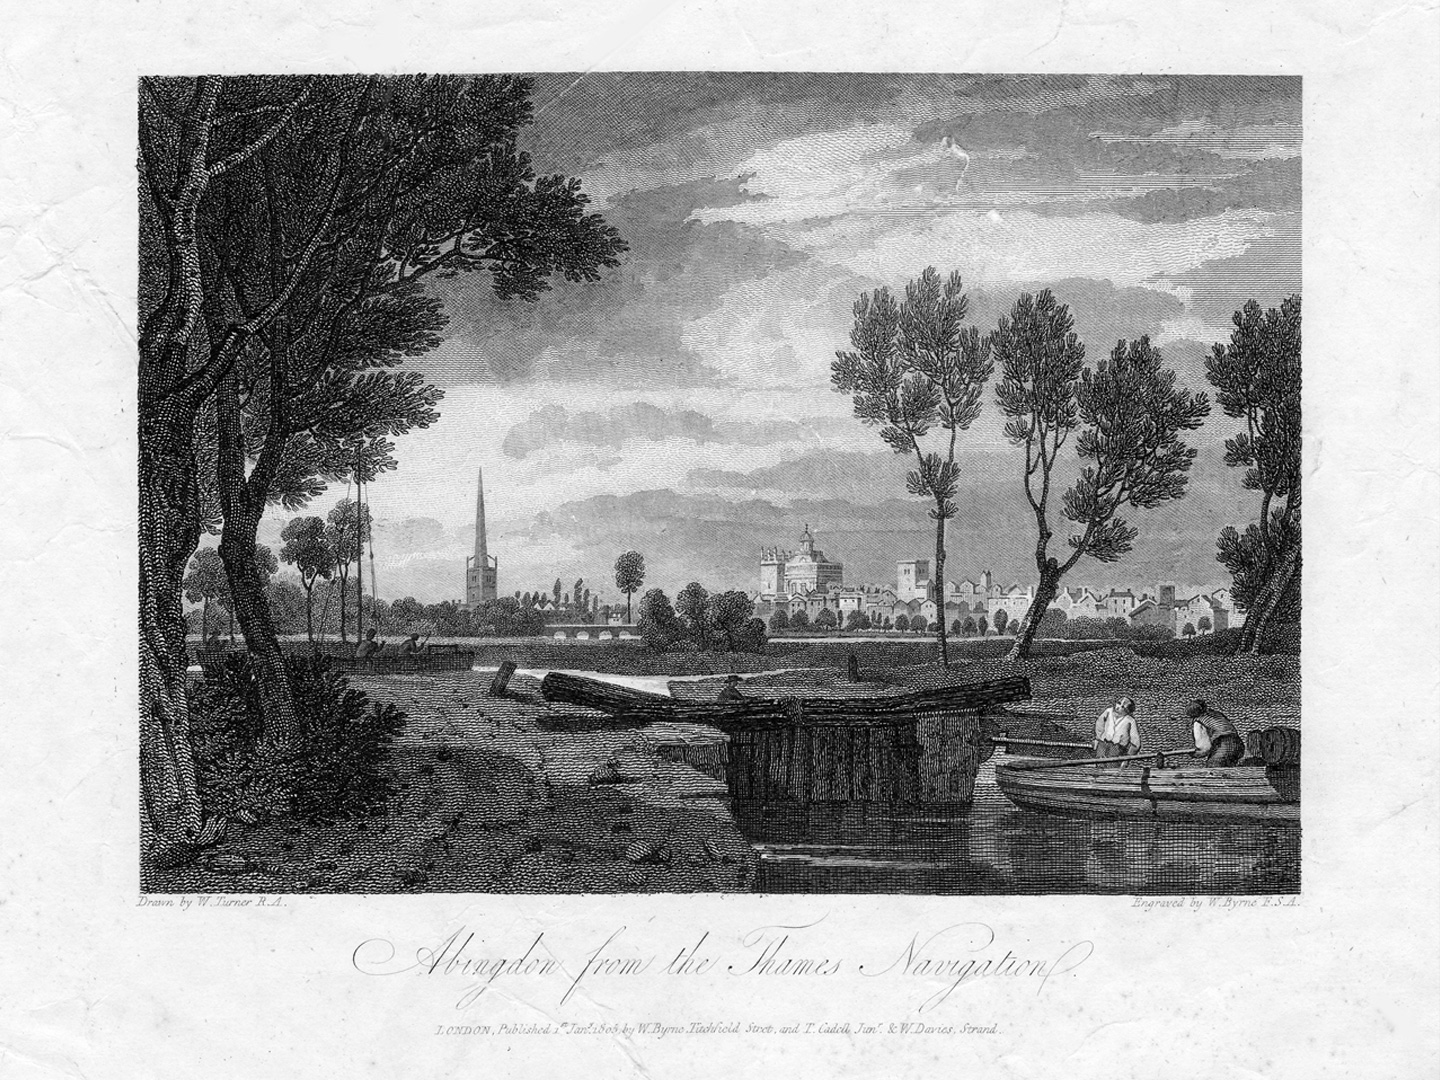 abingdon-from-the-thames-navigation